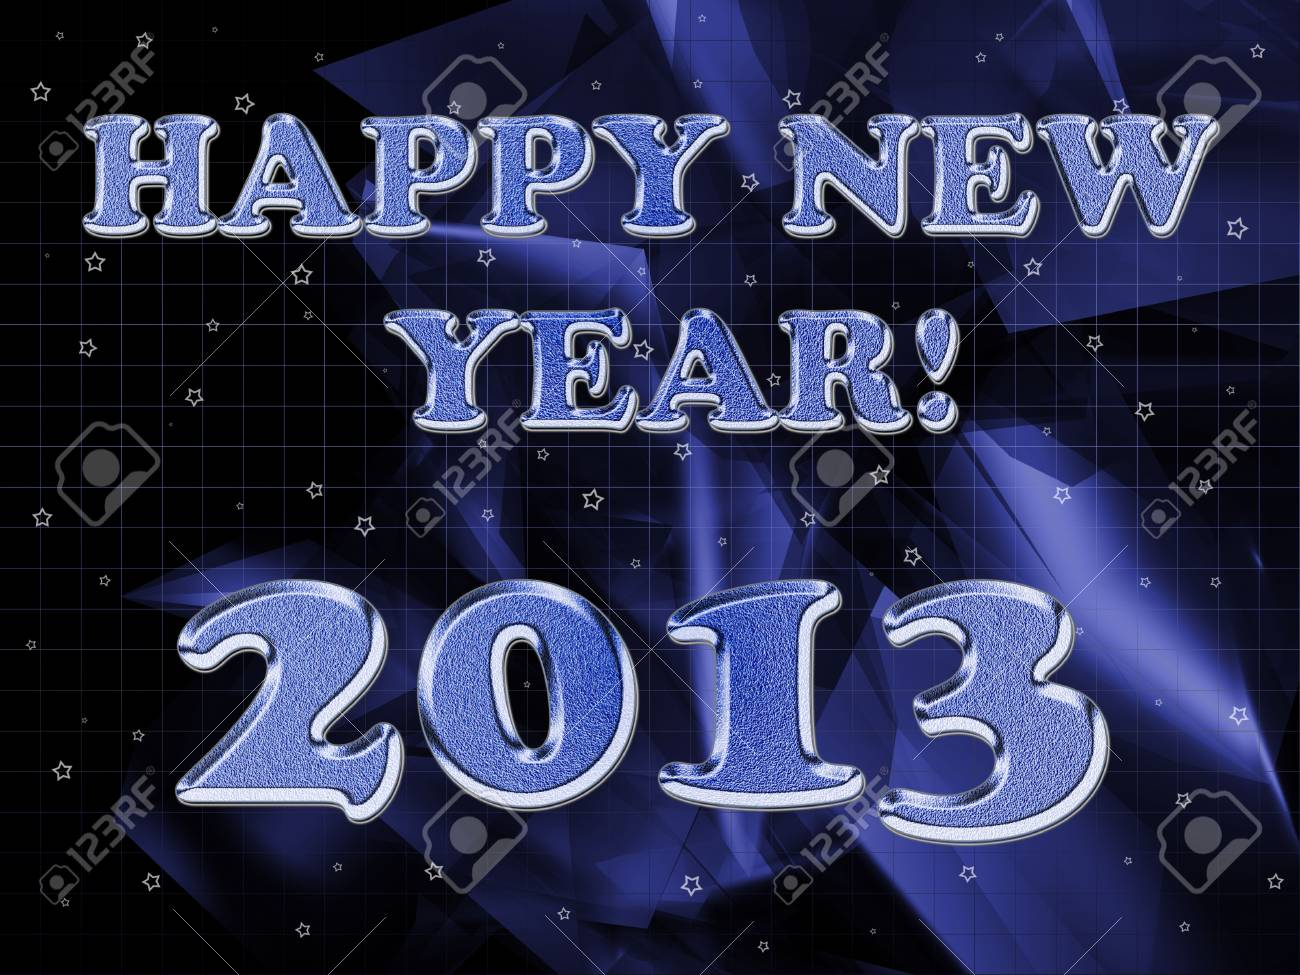 2013 year inscription on the abstract background Stock Photo - 14566183